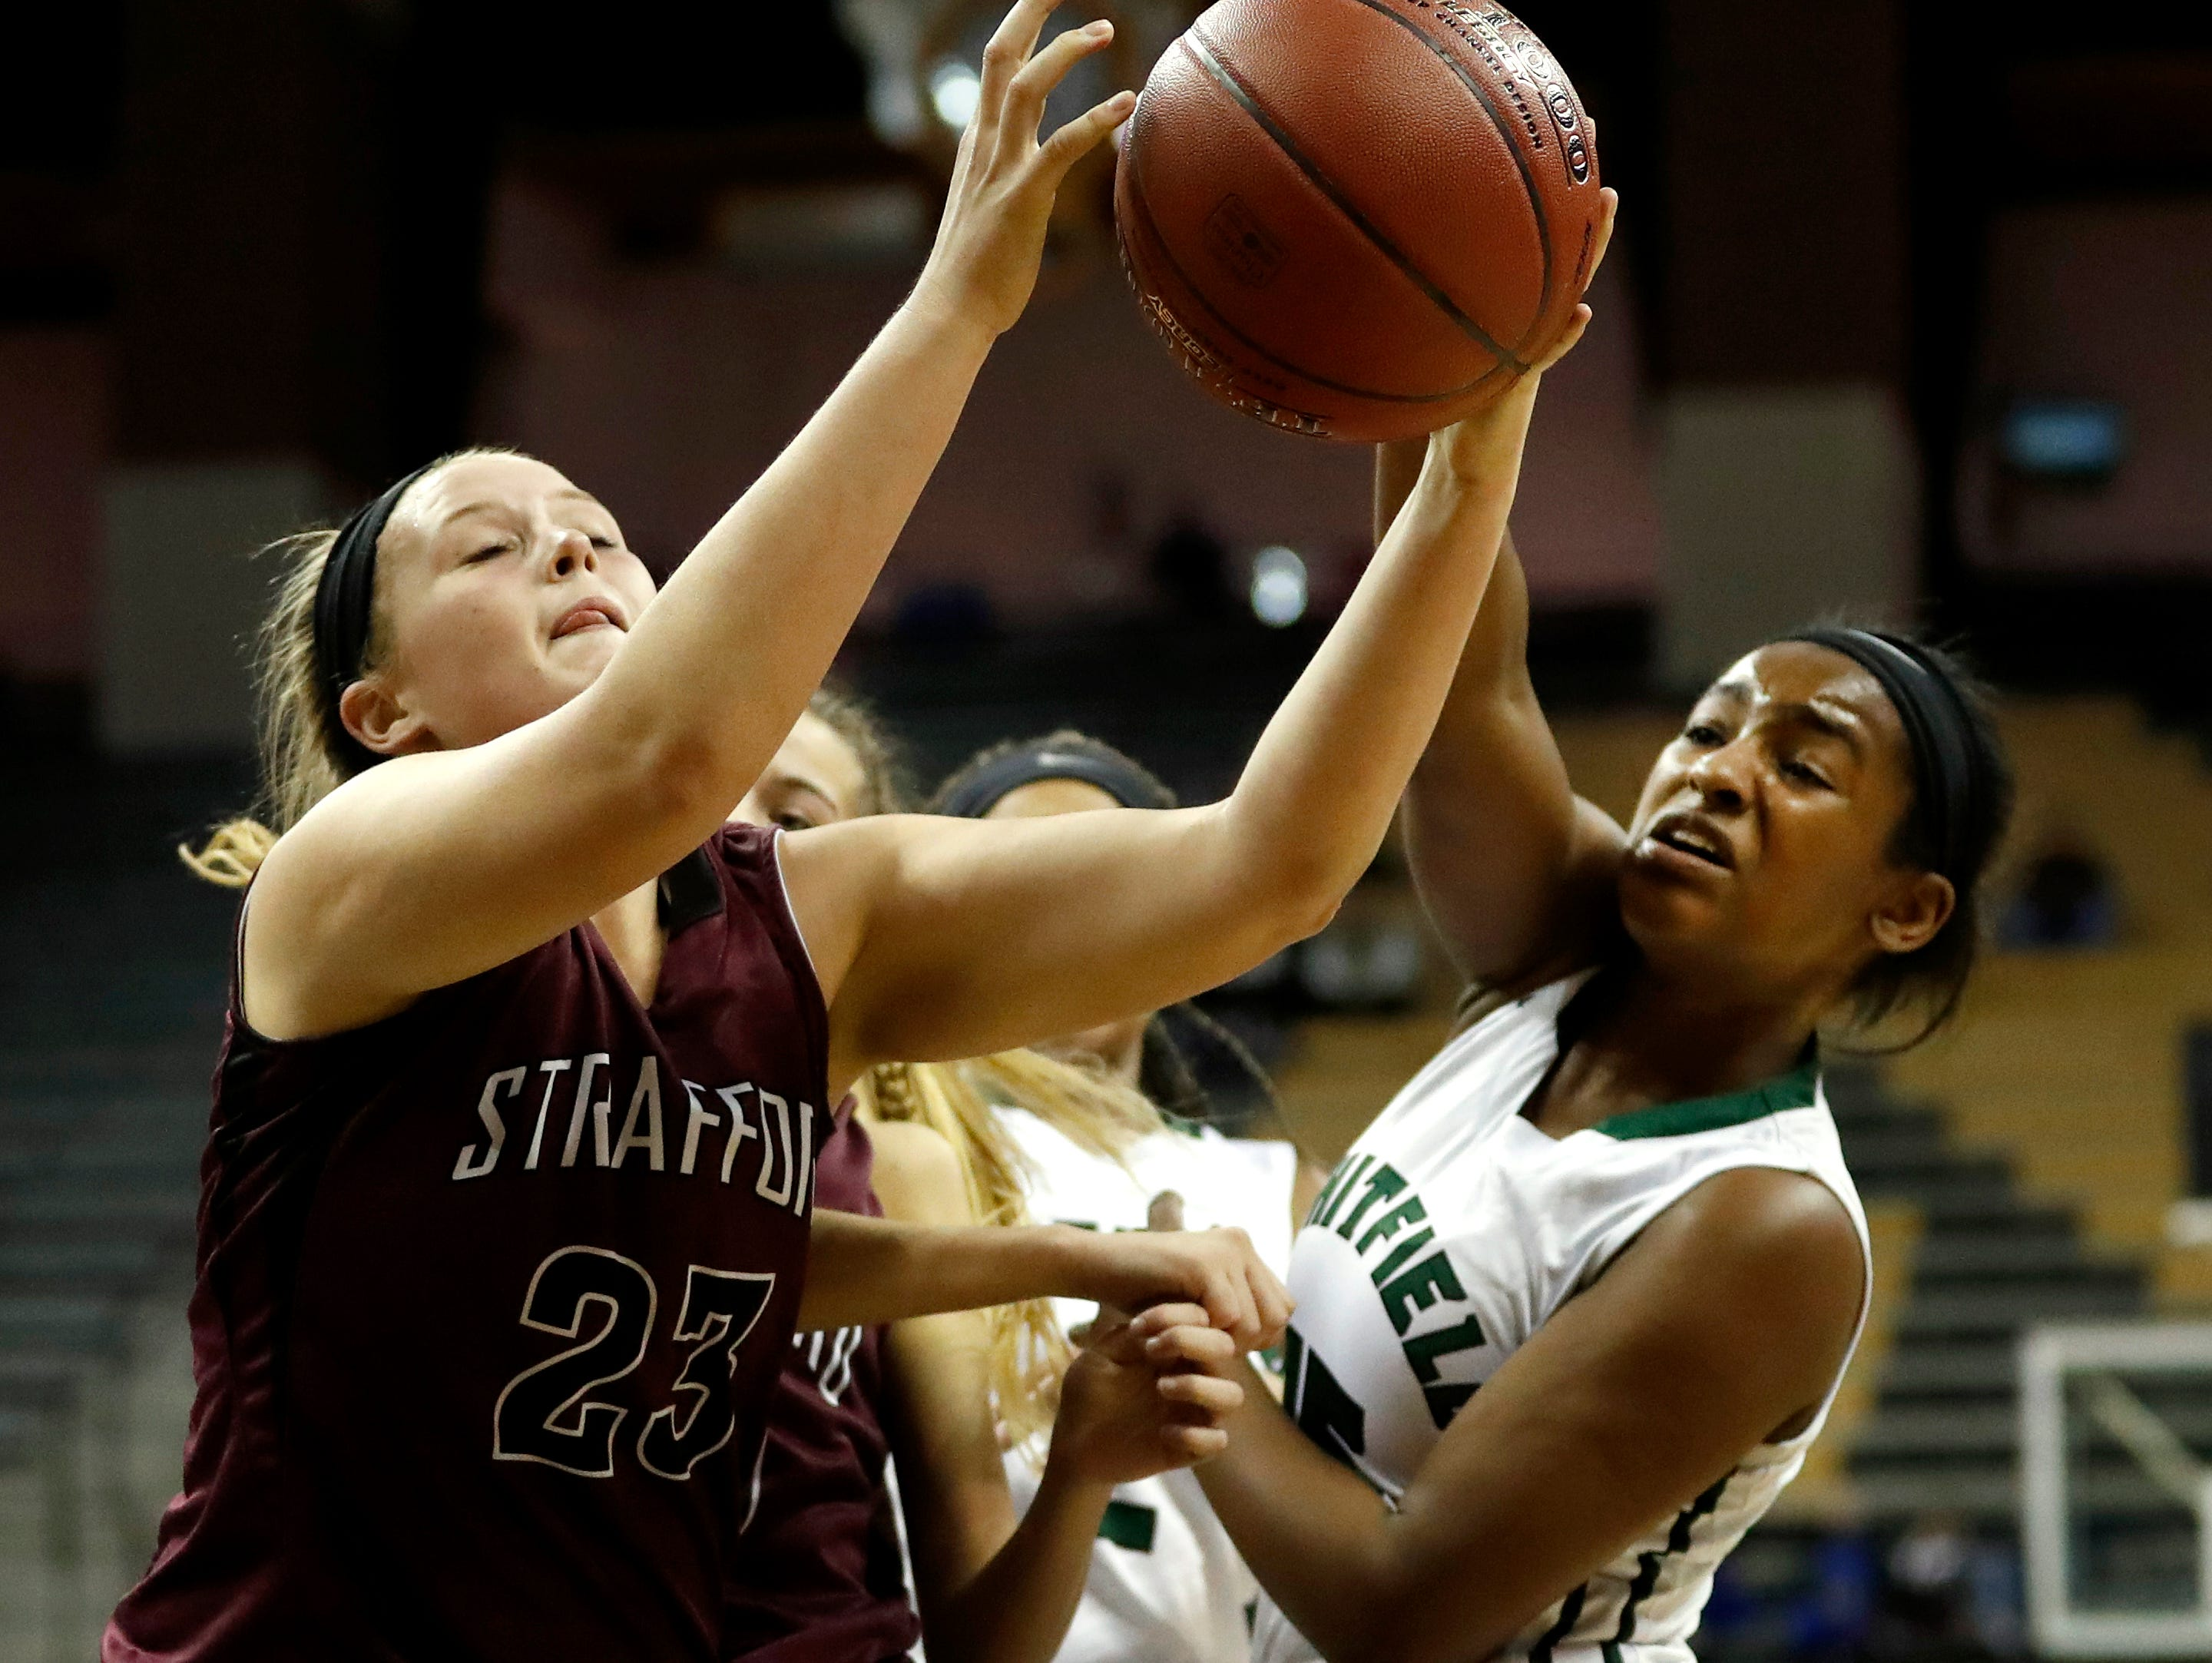 Strafford's Zoey Mullings, left, and Whitfield's Nia Griffin reach for a rebound during the first half of the Missouri Class 3 girls high school championship basketball game Saturday, March 11, 2017, in Columbia, Mo.